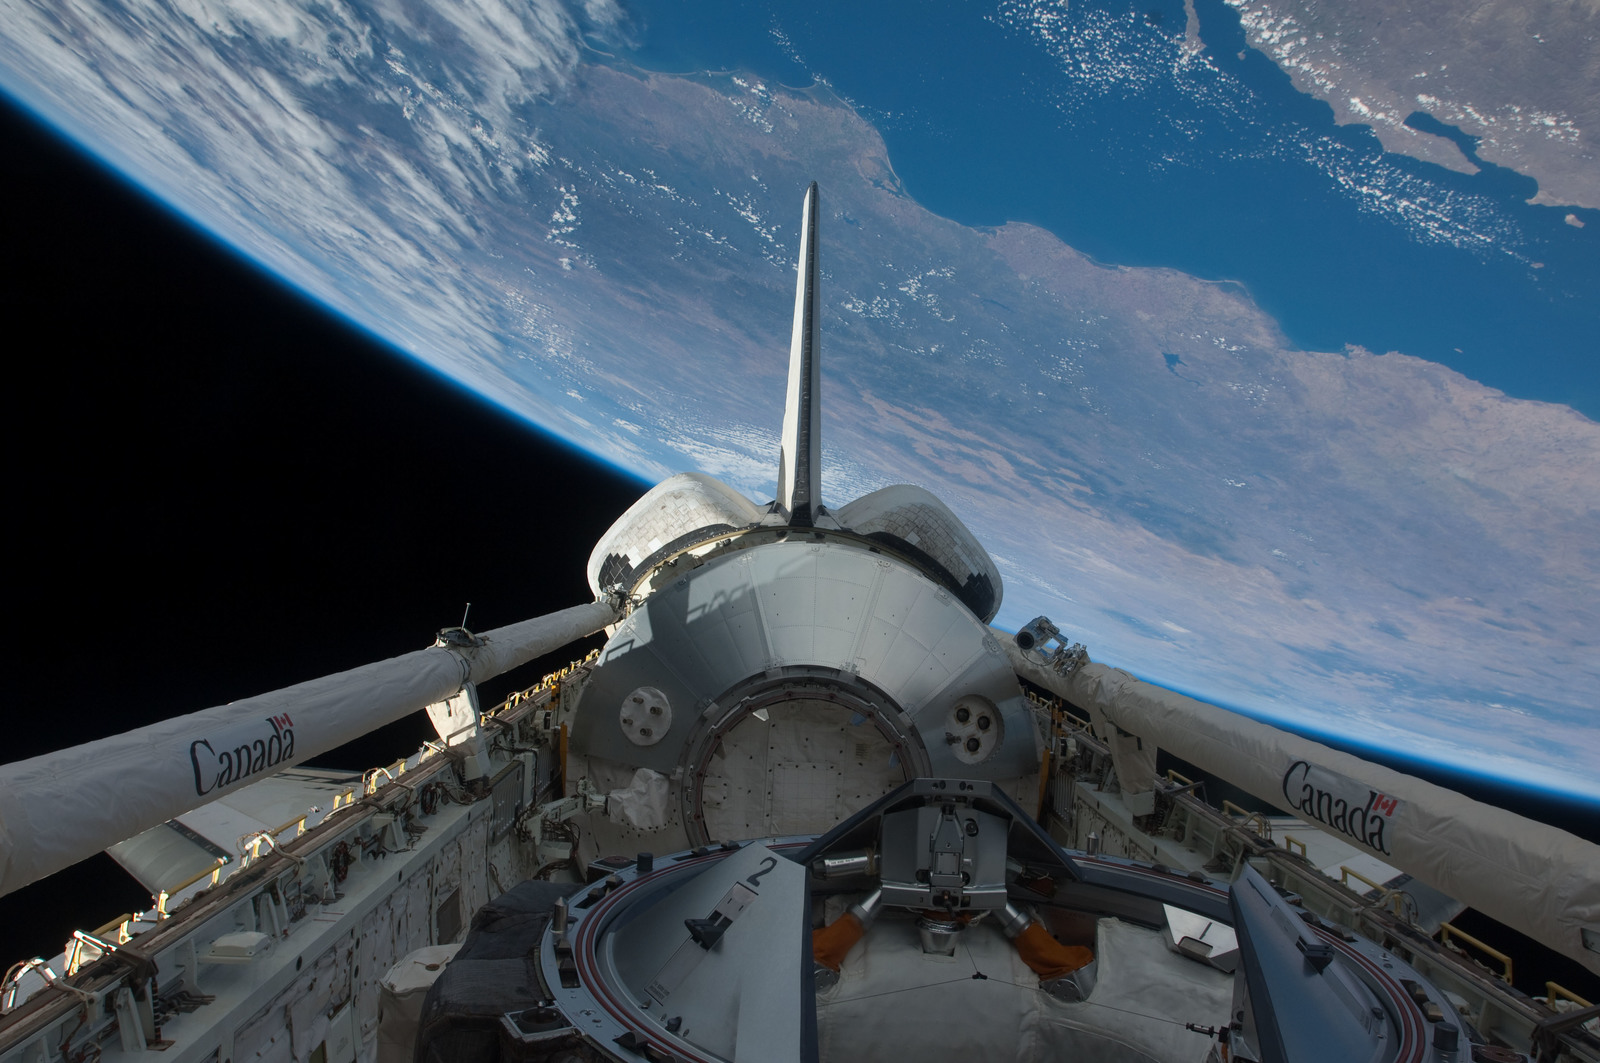 S126E026979 - STS-126 - Payload Bay of Endeavour